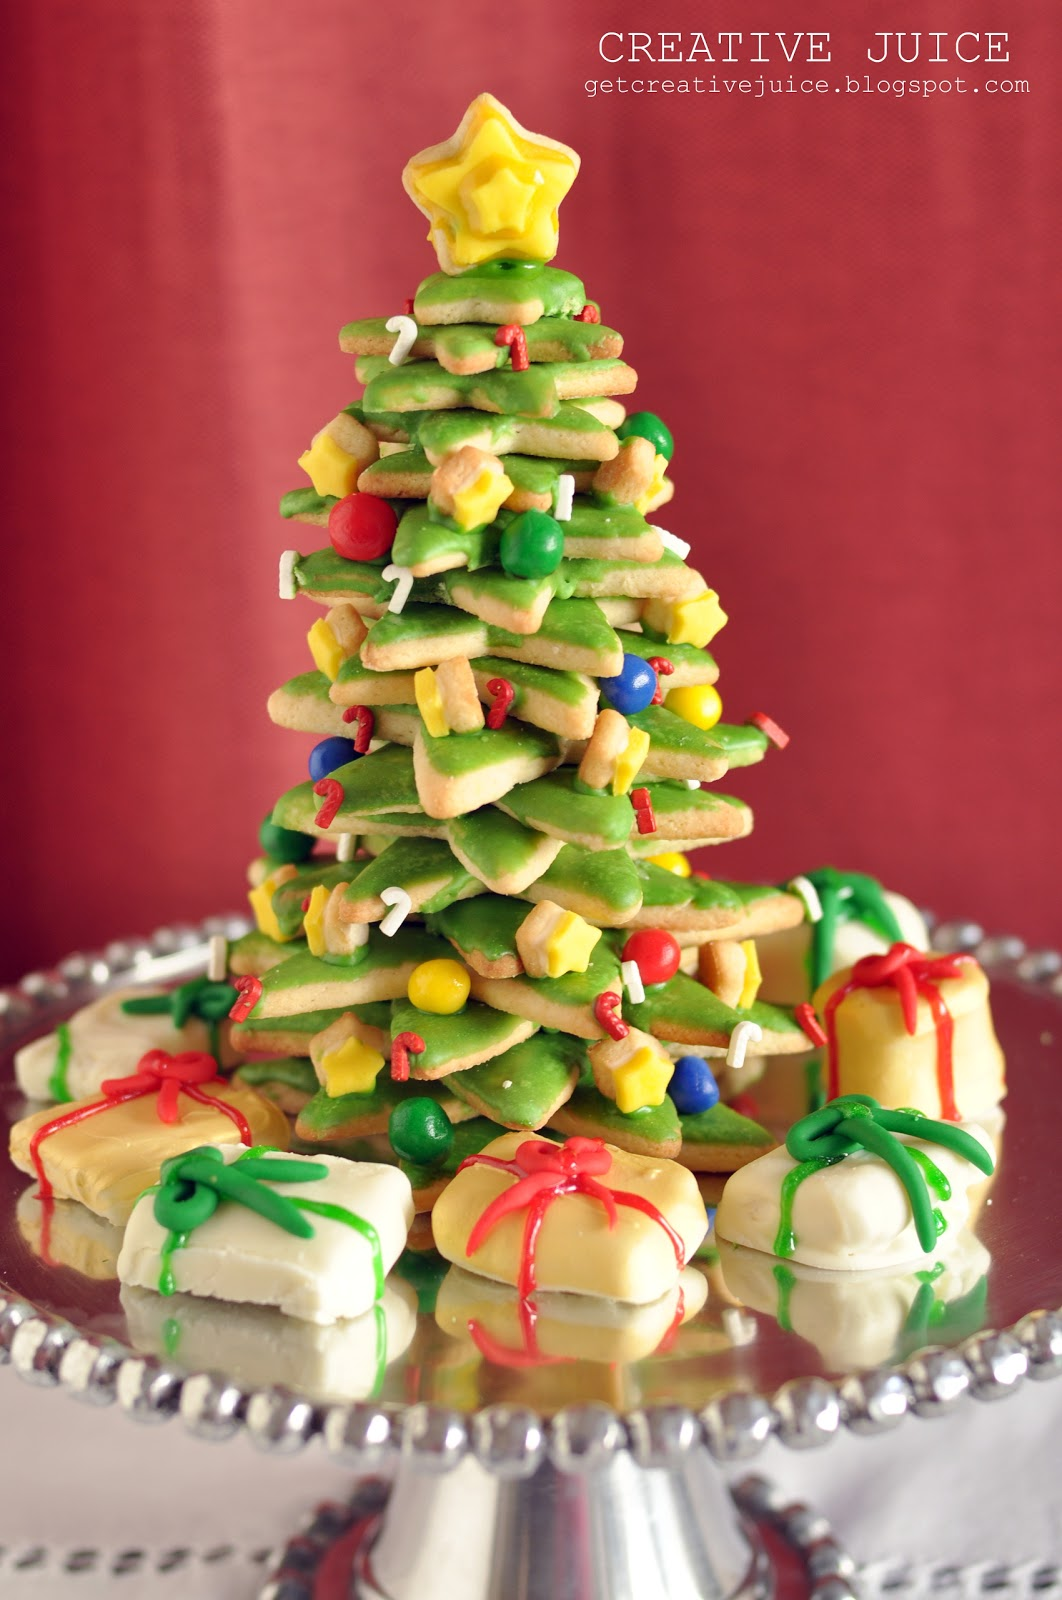 TUTORIAL} 3D cookie christmas tree tutorial - Creative Juice